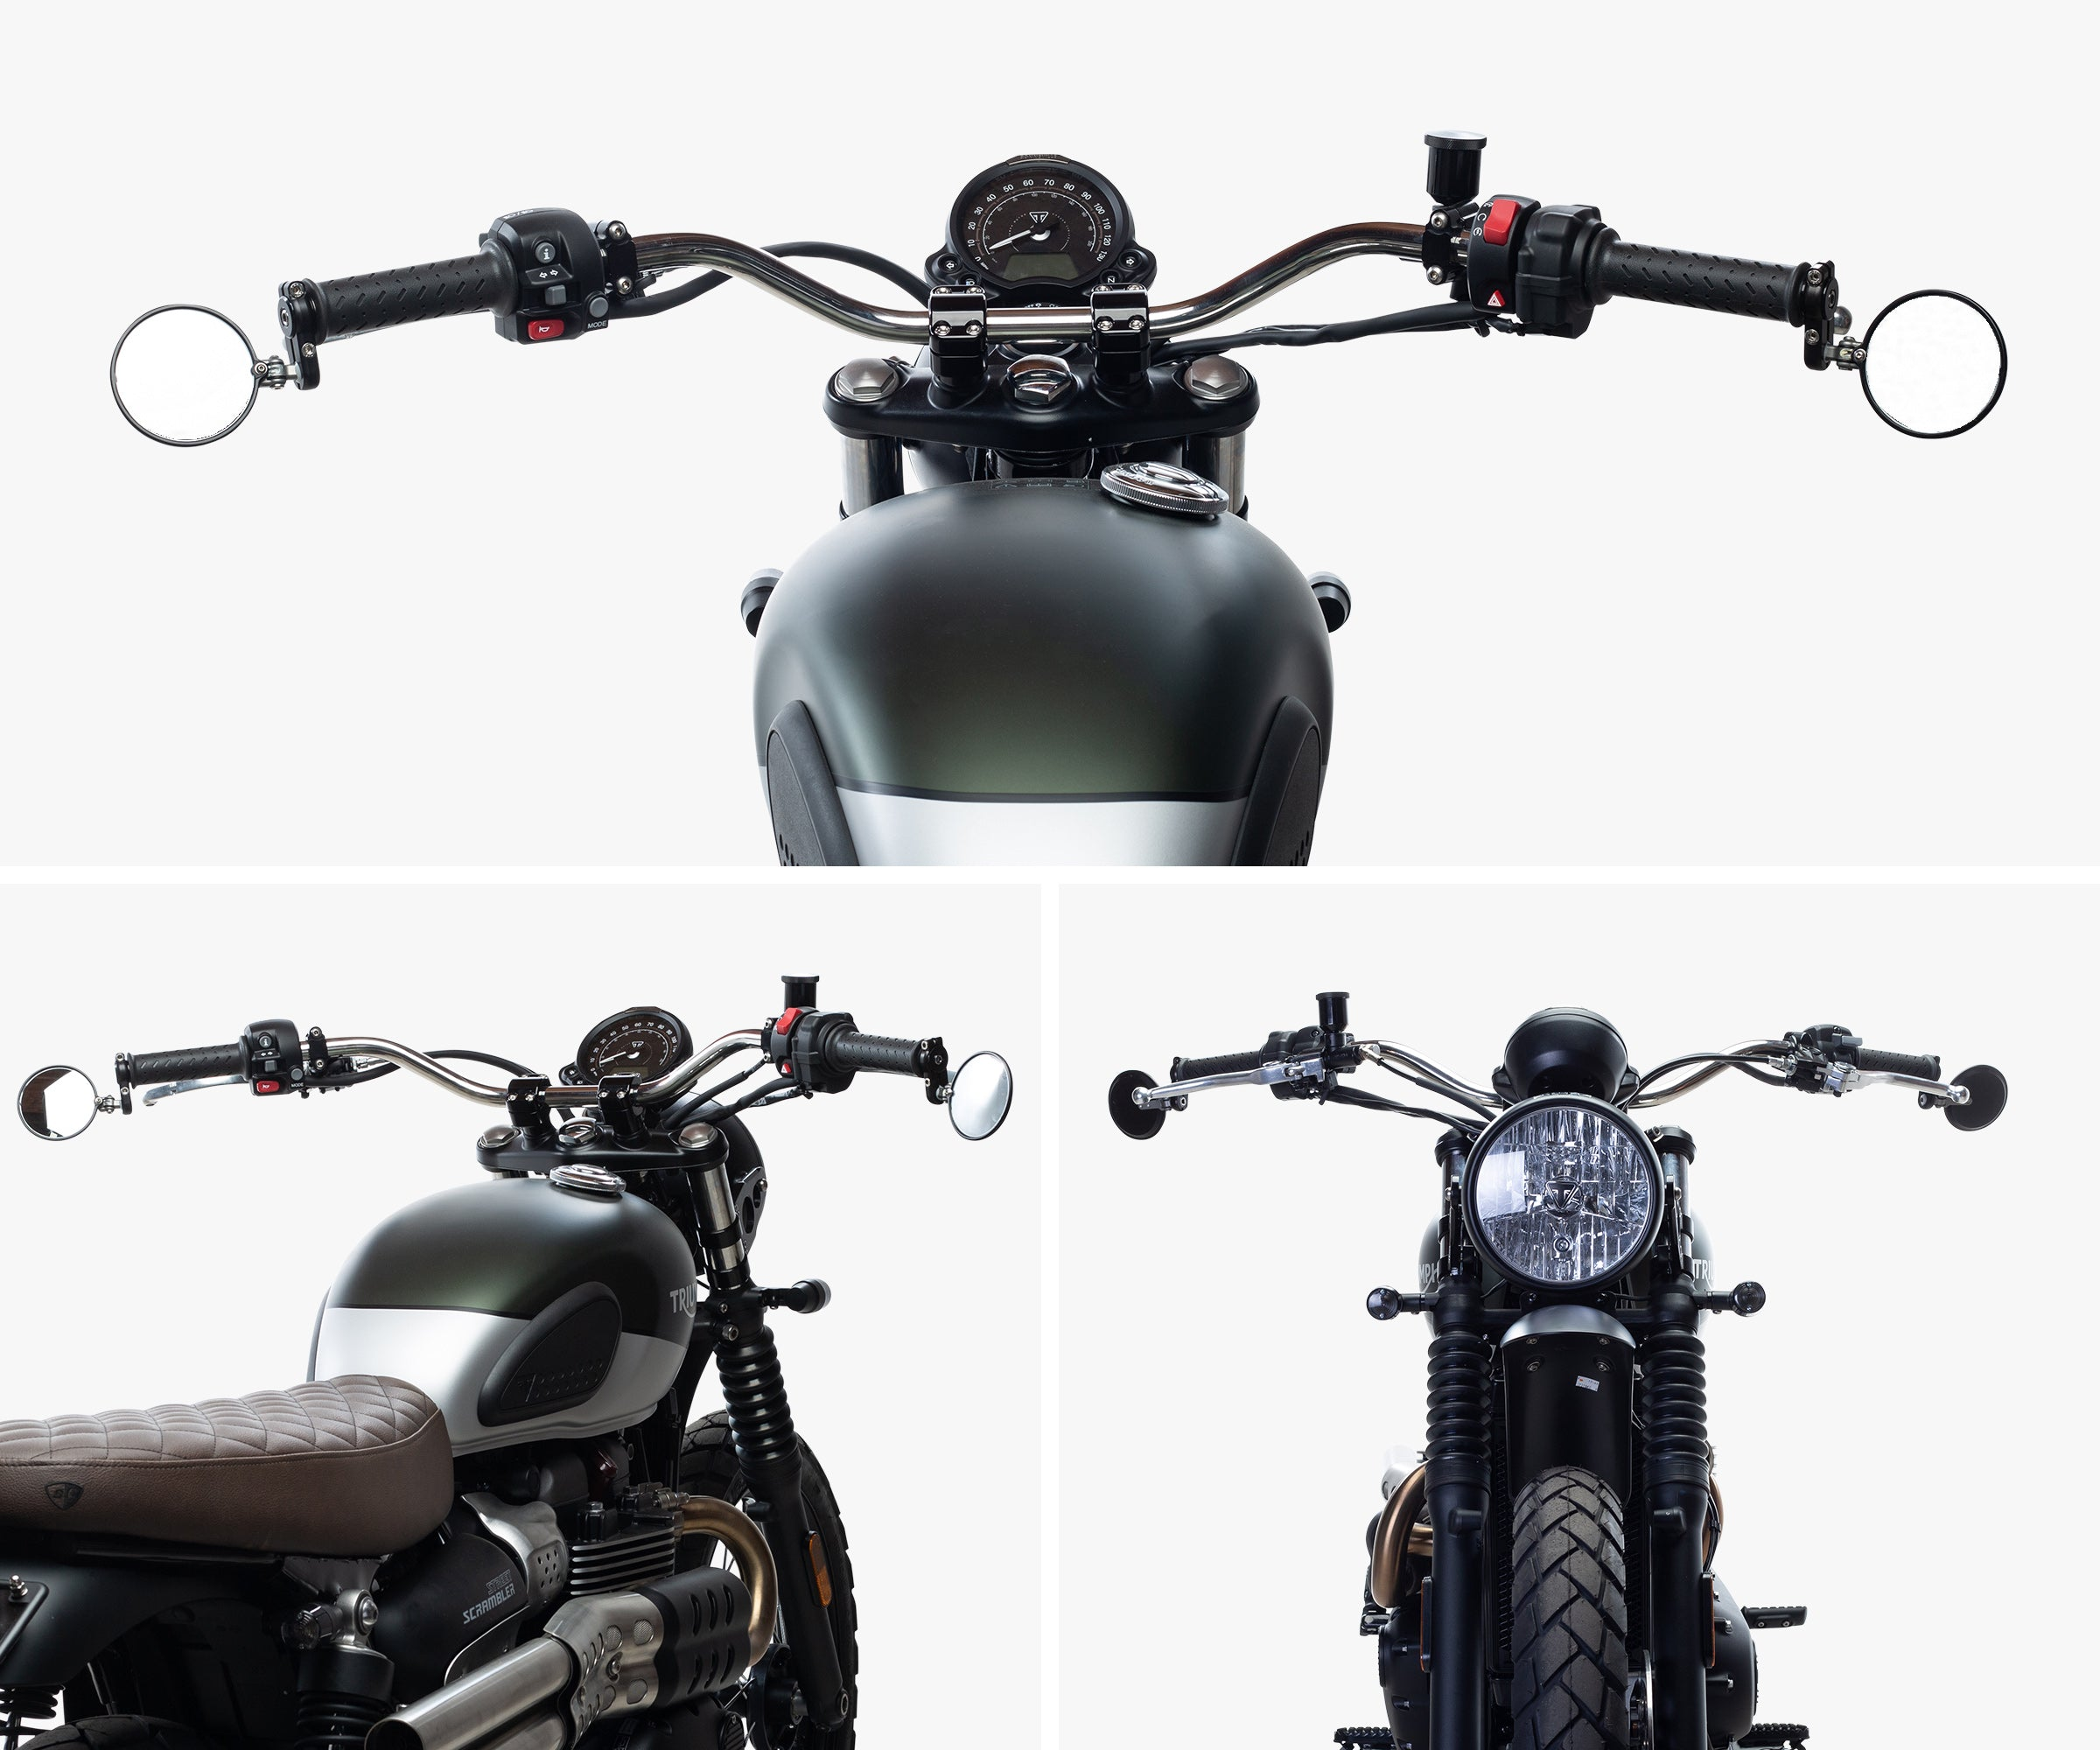 British Customs Triumph Street Scrambler Tracker Handlebar Kit